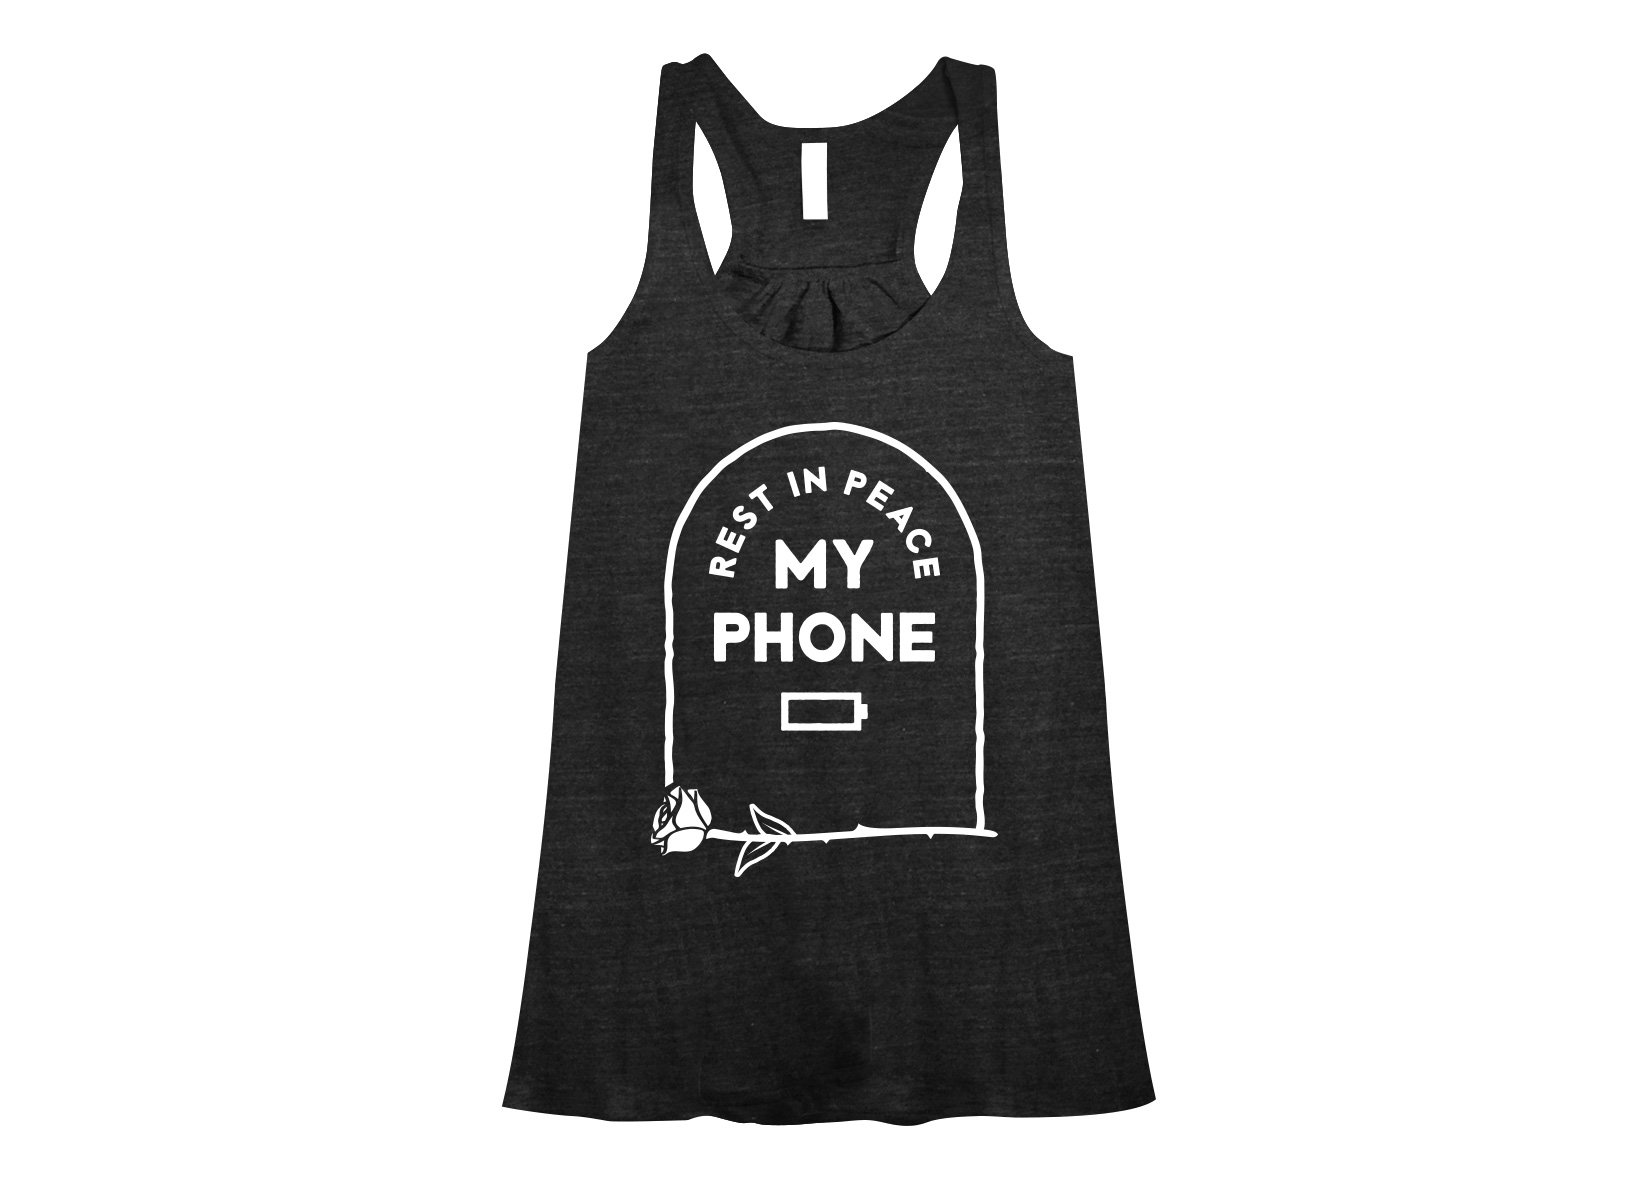 RIP My Phone on Womens Tanks T-Shirt